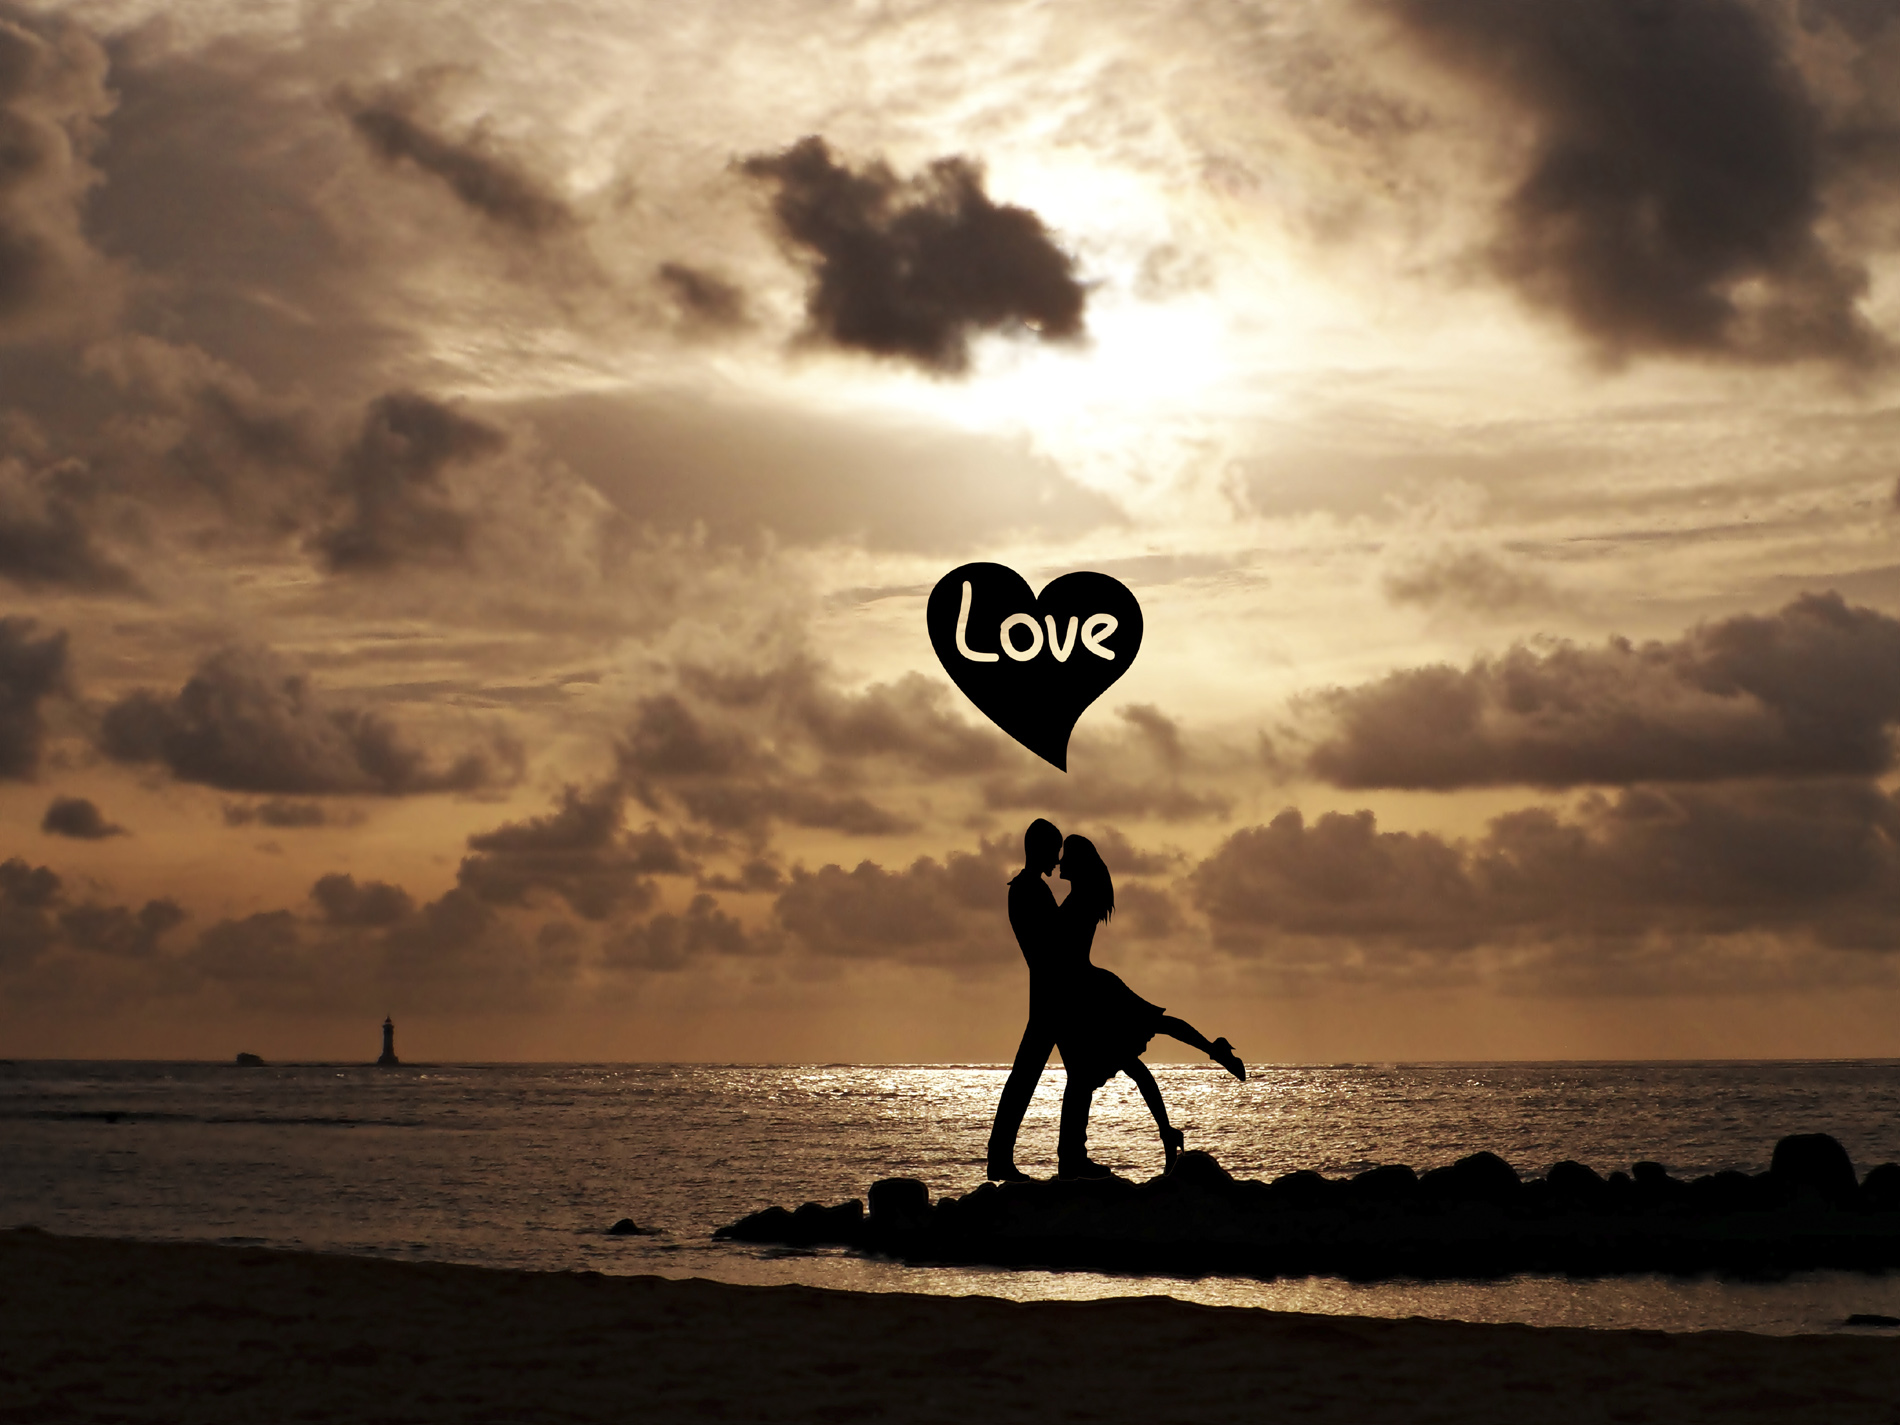 Couple on the beach in the evening dusk people silhouette 52569